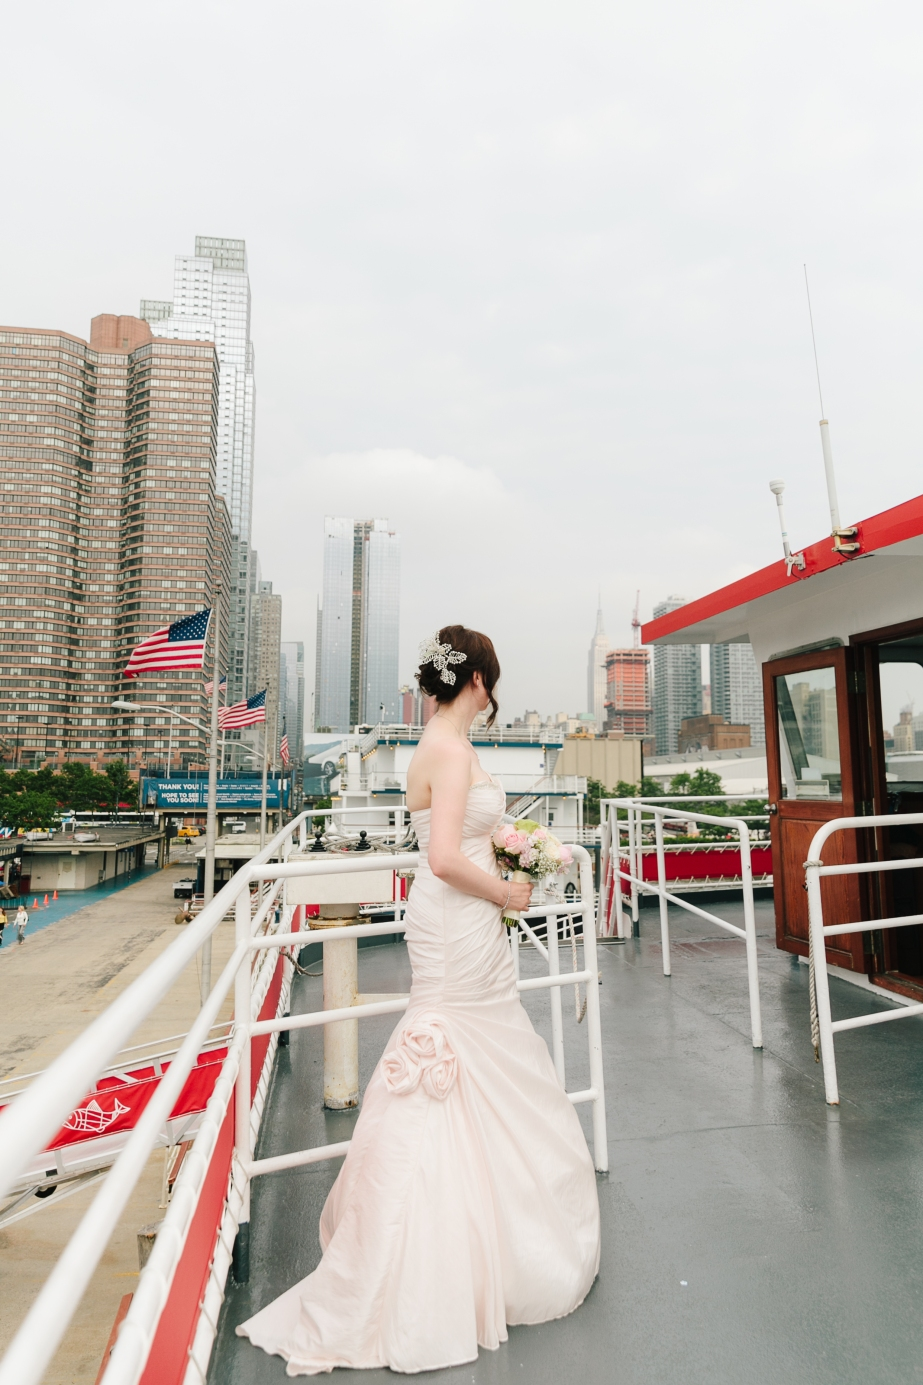 VA_nyc_wedding-258